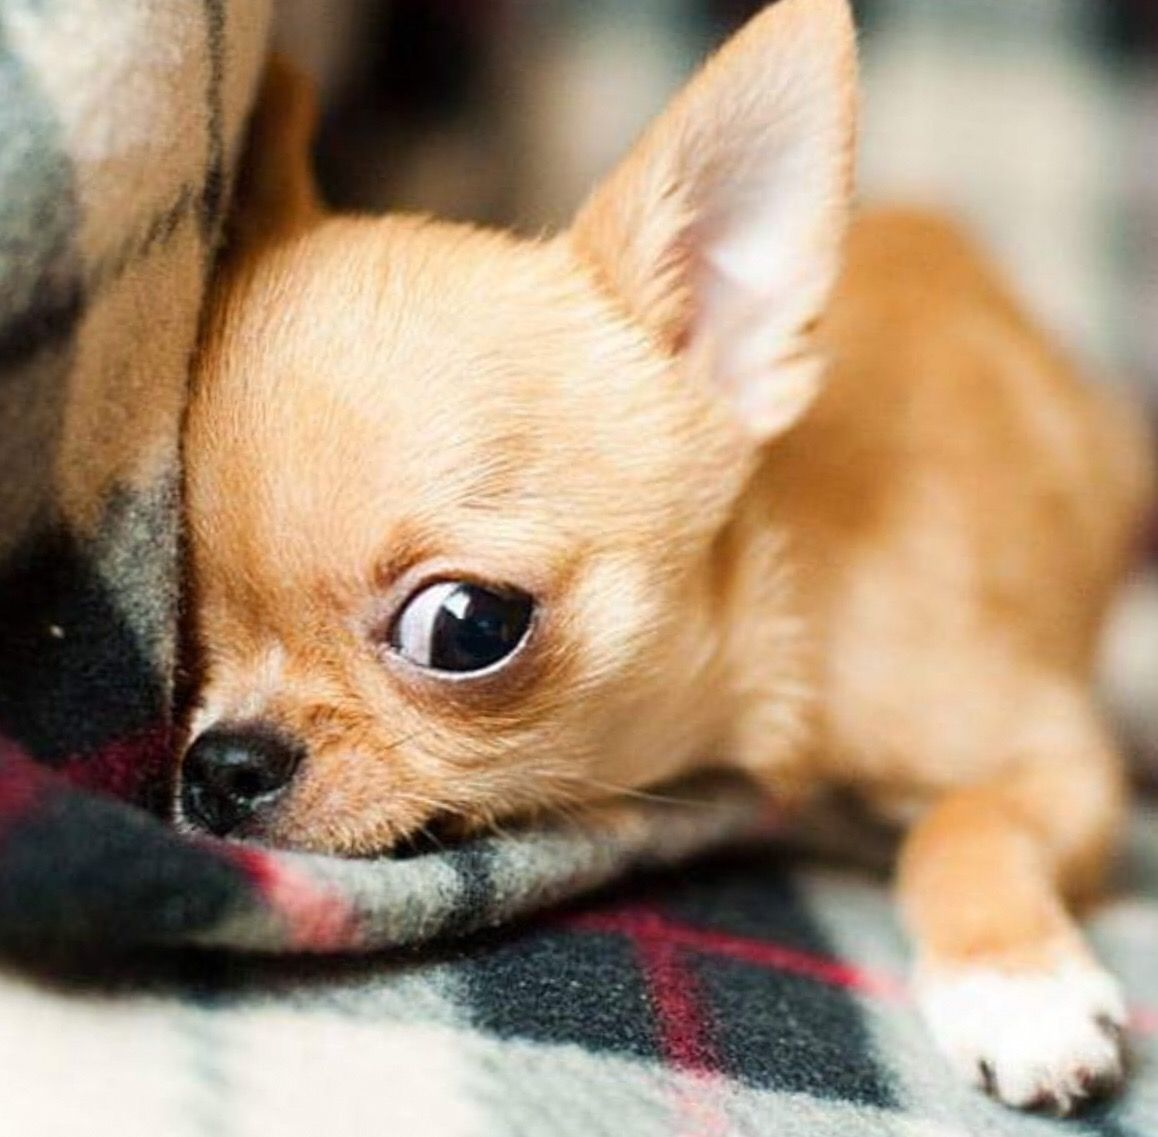 Cute Chihuahua Cutechihuahua Chihuahua Dogs Toy Dog Breeds Kittens And Puppies